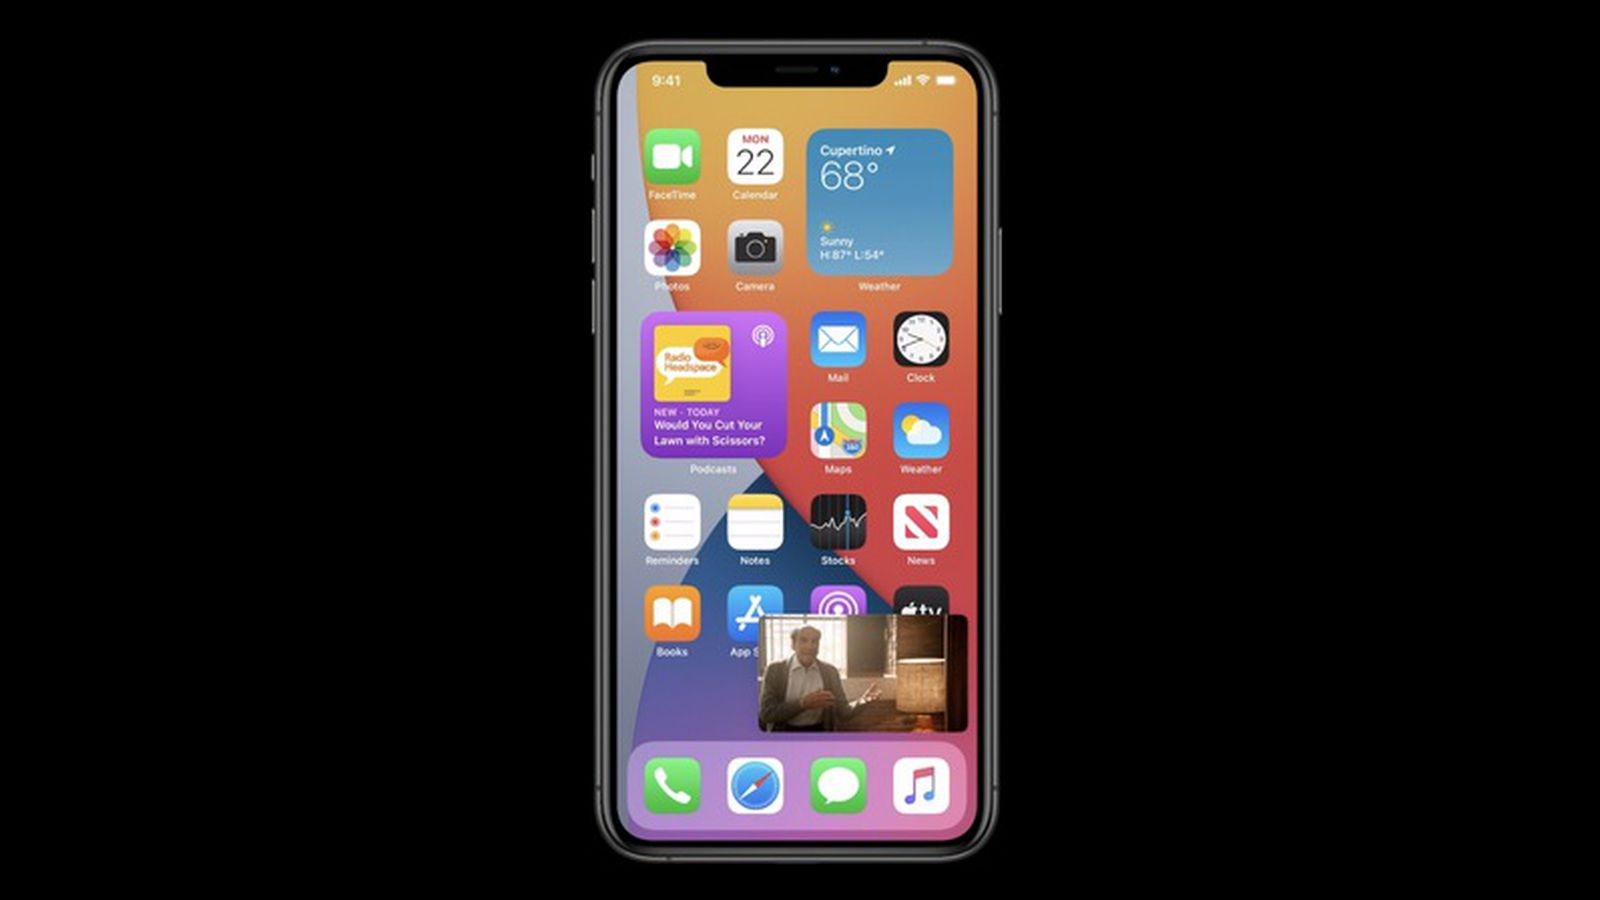 Ios 14 Includes Picture In Picture Mode For Iphone Macrumors